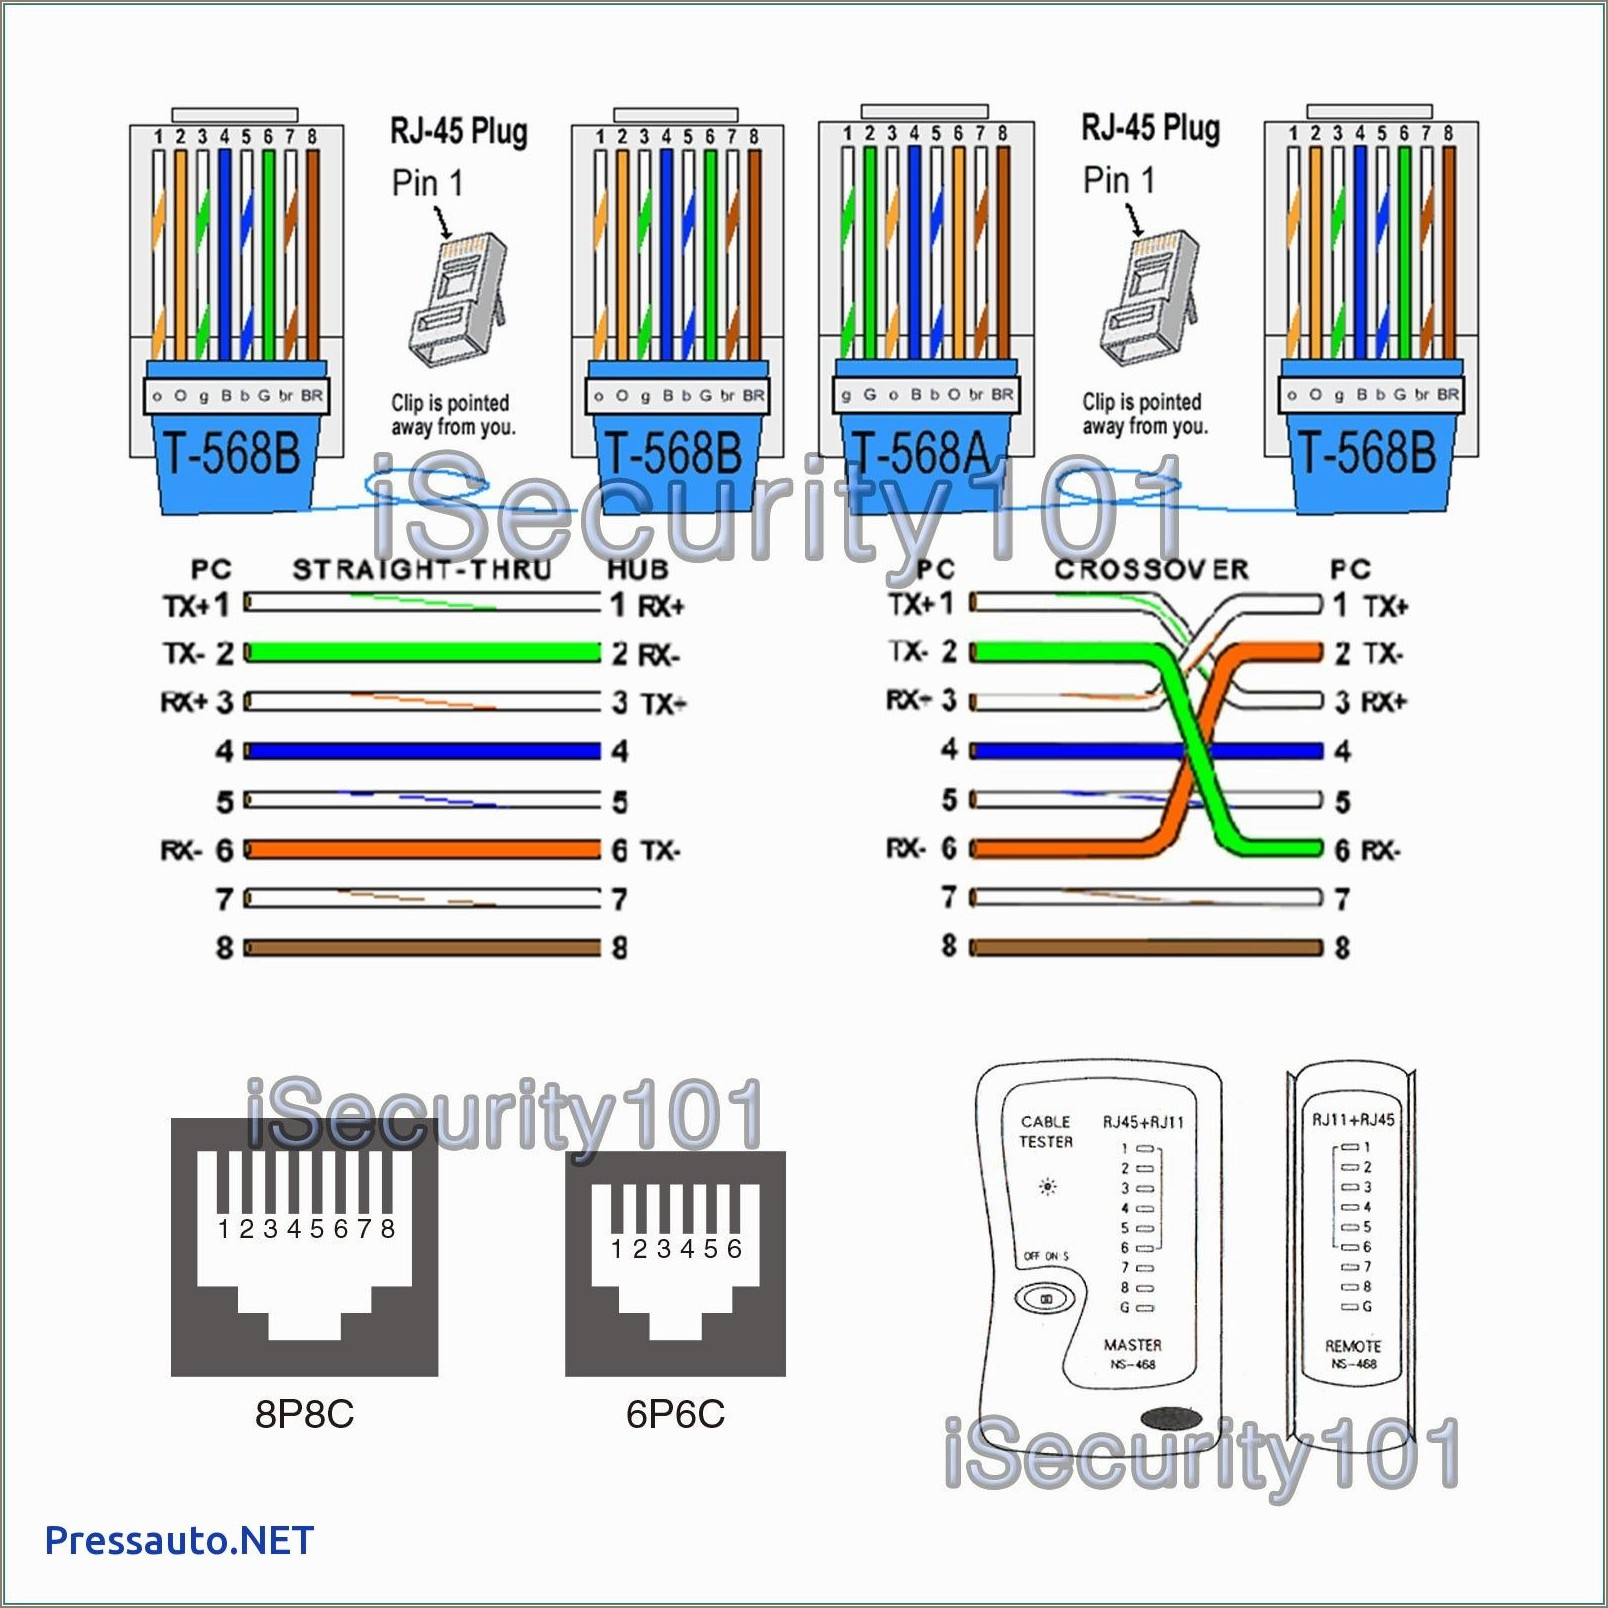 Ethernet Cable Wiring Diagram Type B